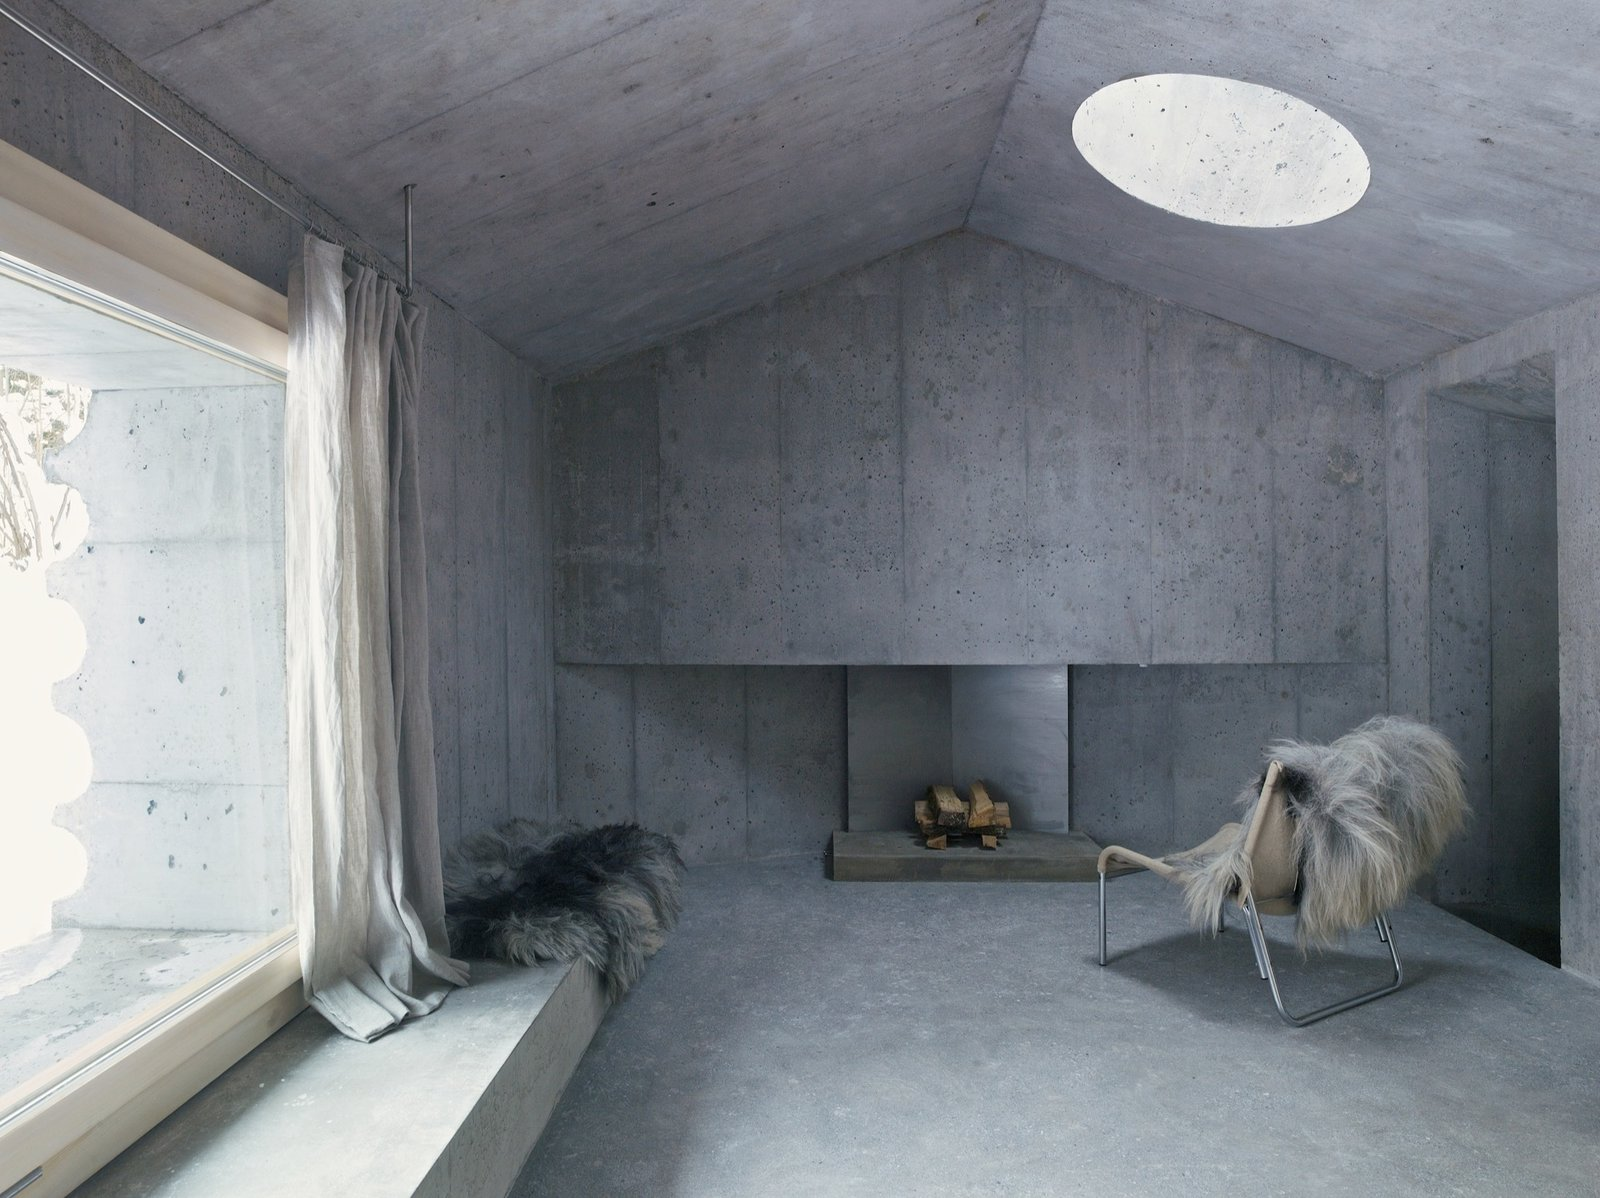 #alpinemodern #design #lifestyle #modern #elevatedliving #quiestdesign #refugeinconcrete #concrete   Photo courtesy of Gaudenz Danuser  Refuge in Concrete